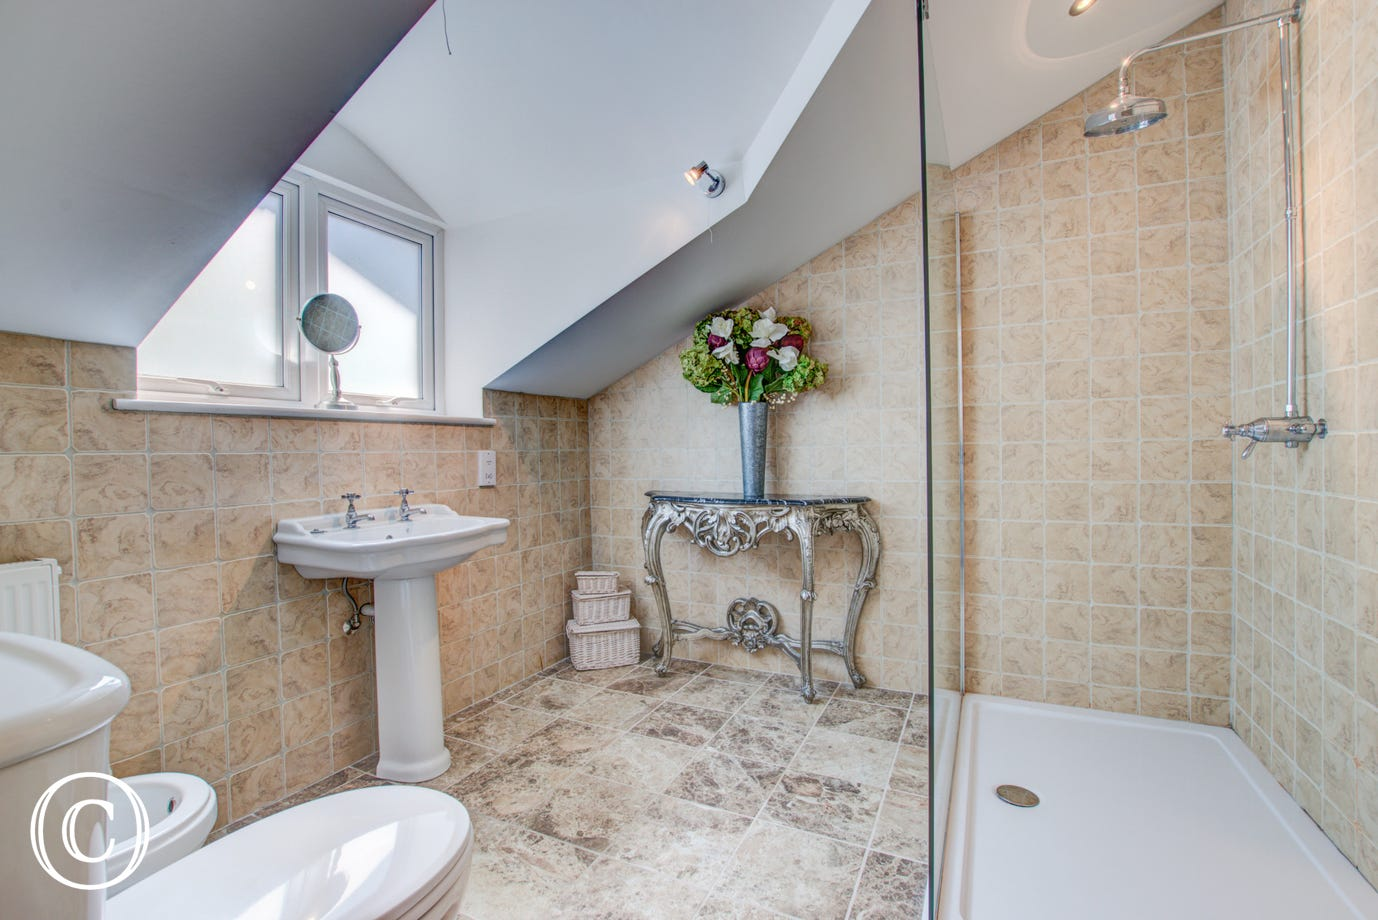 On the third floor in the apartment there is a bathroom with large walk in shower, WC, bidet and wash basin.